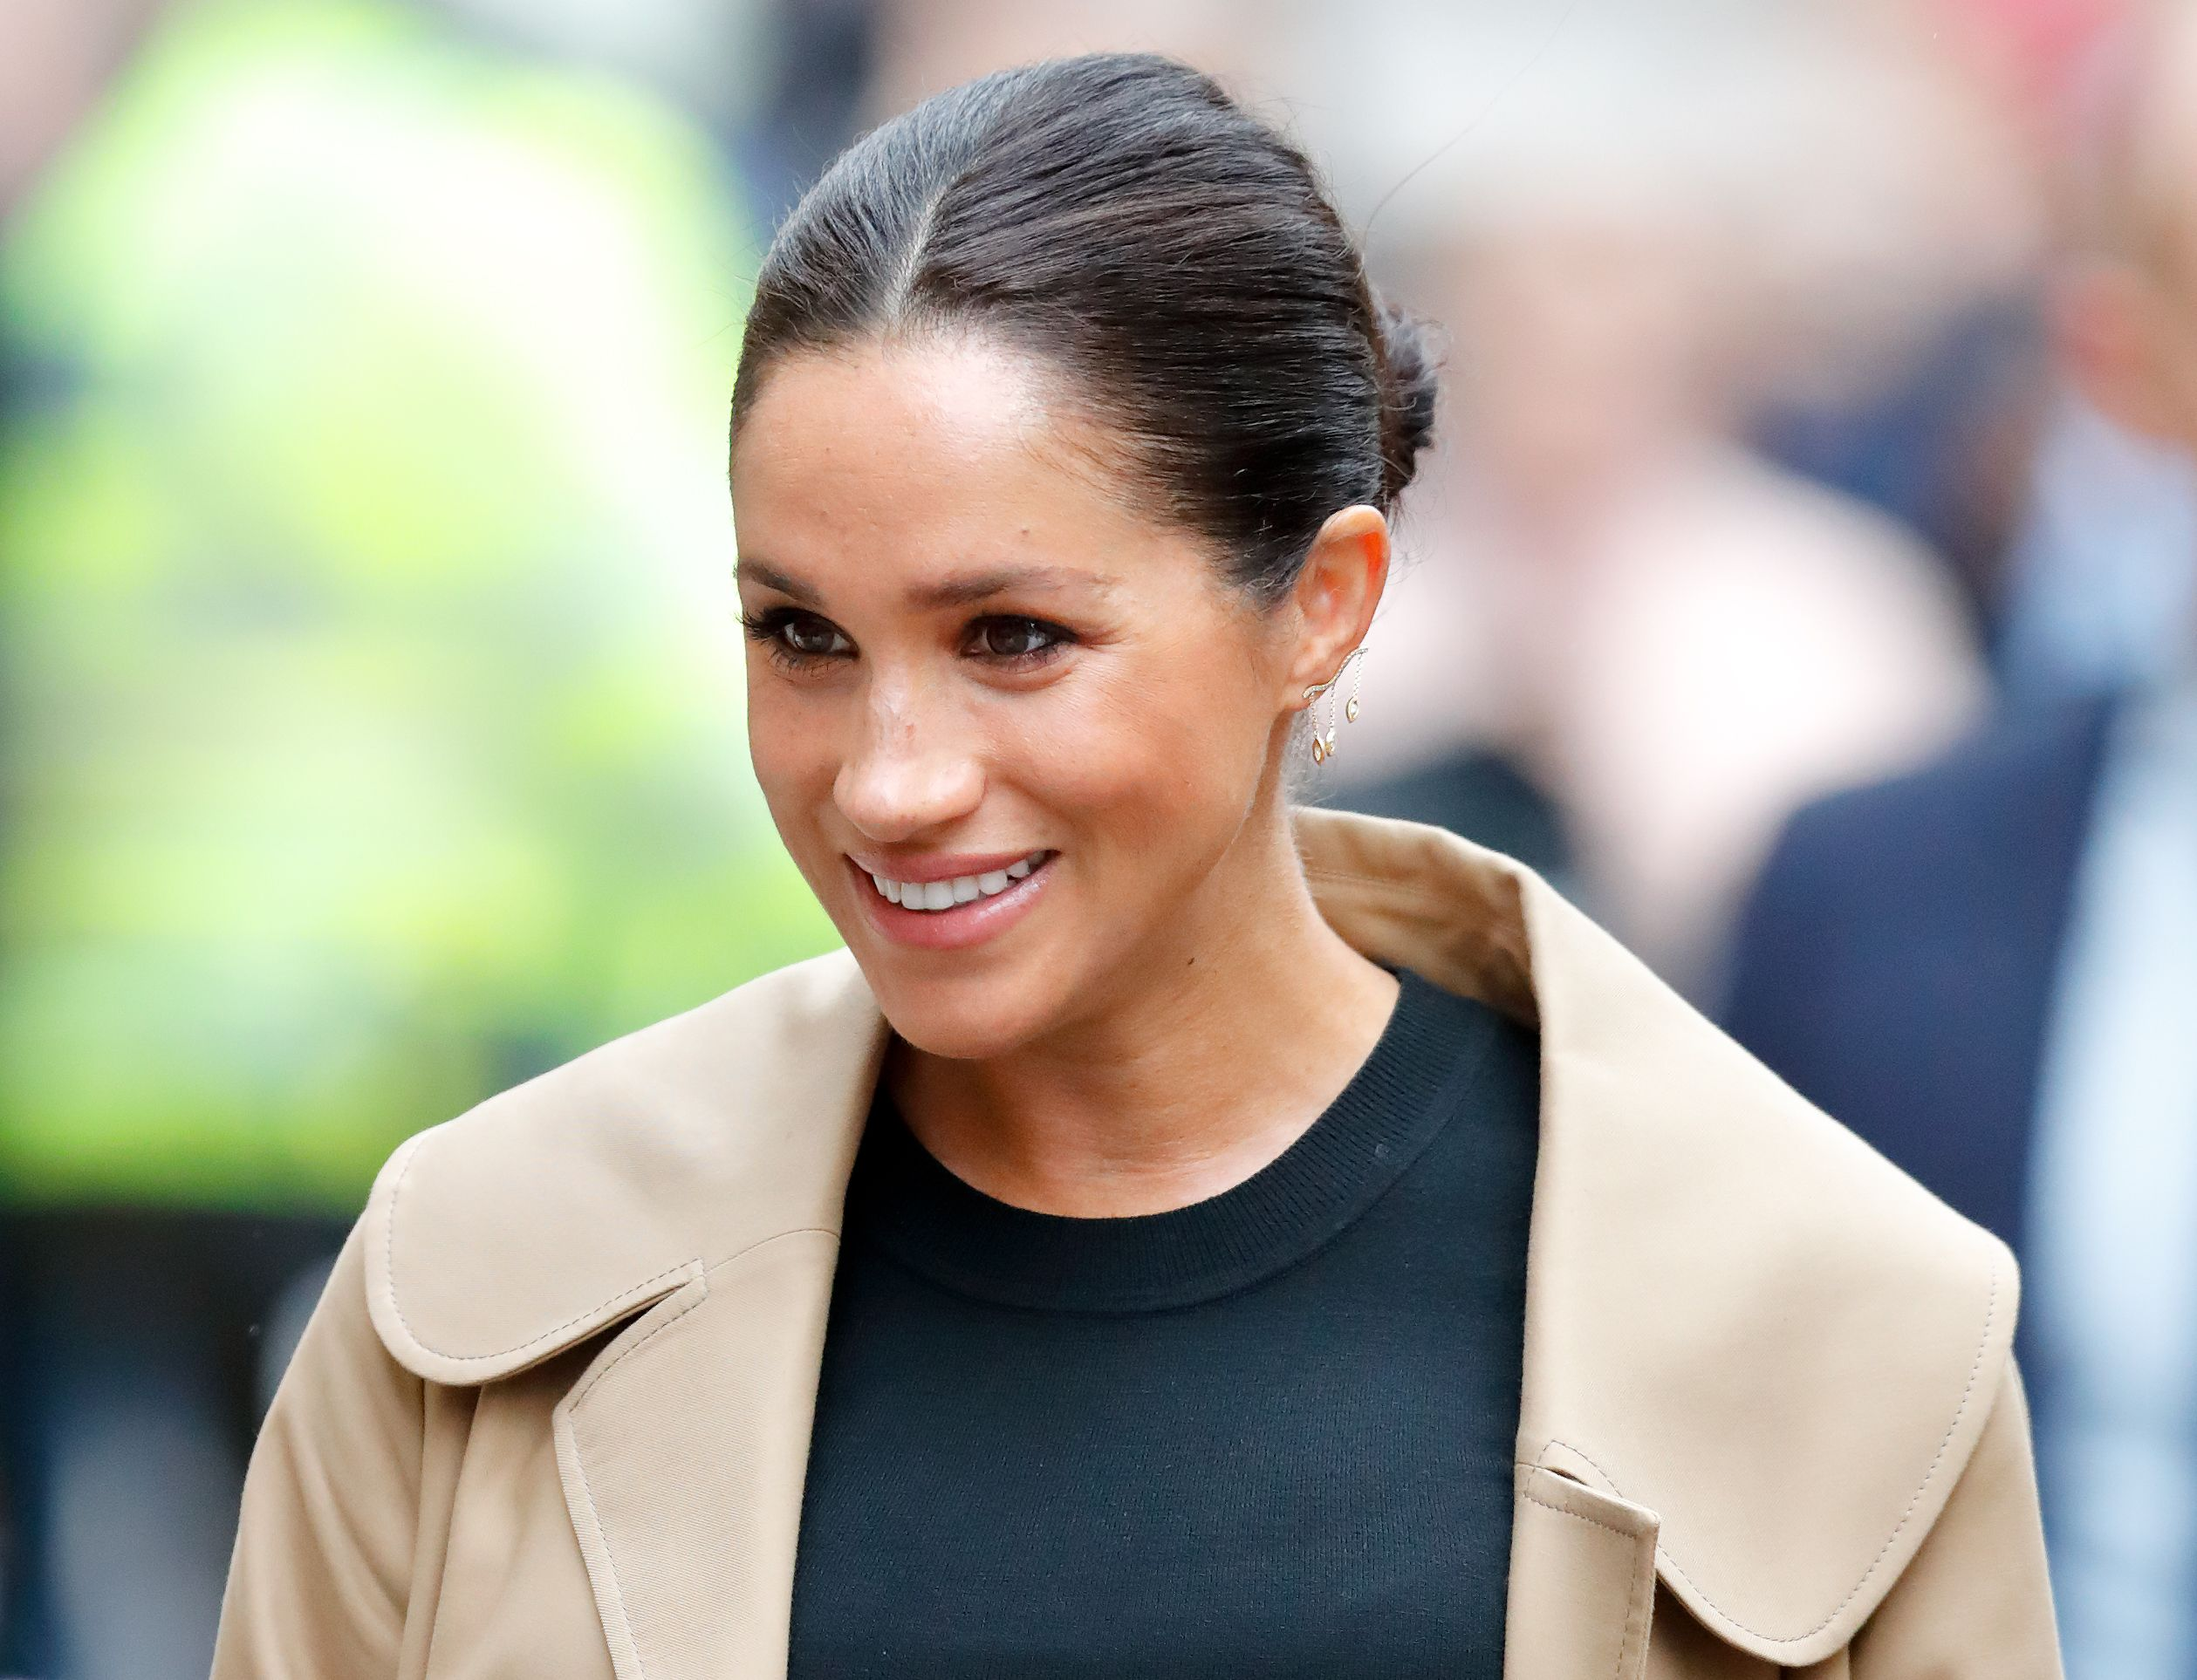 Meghan Markle shares Instagram post on work she's been doing behind-the-scenes